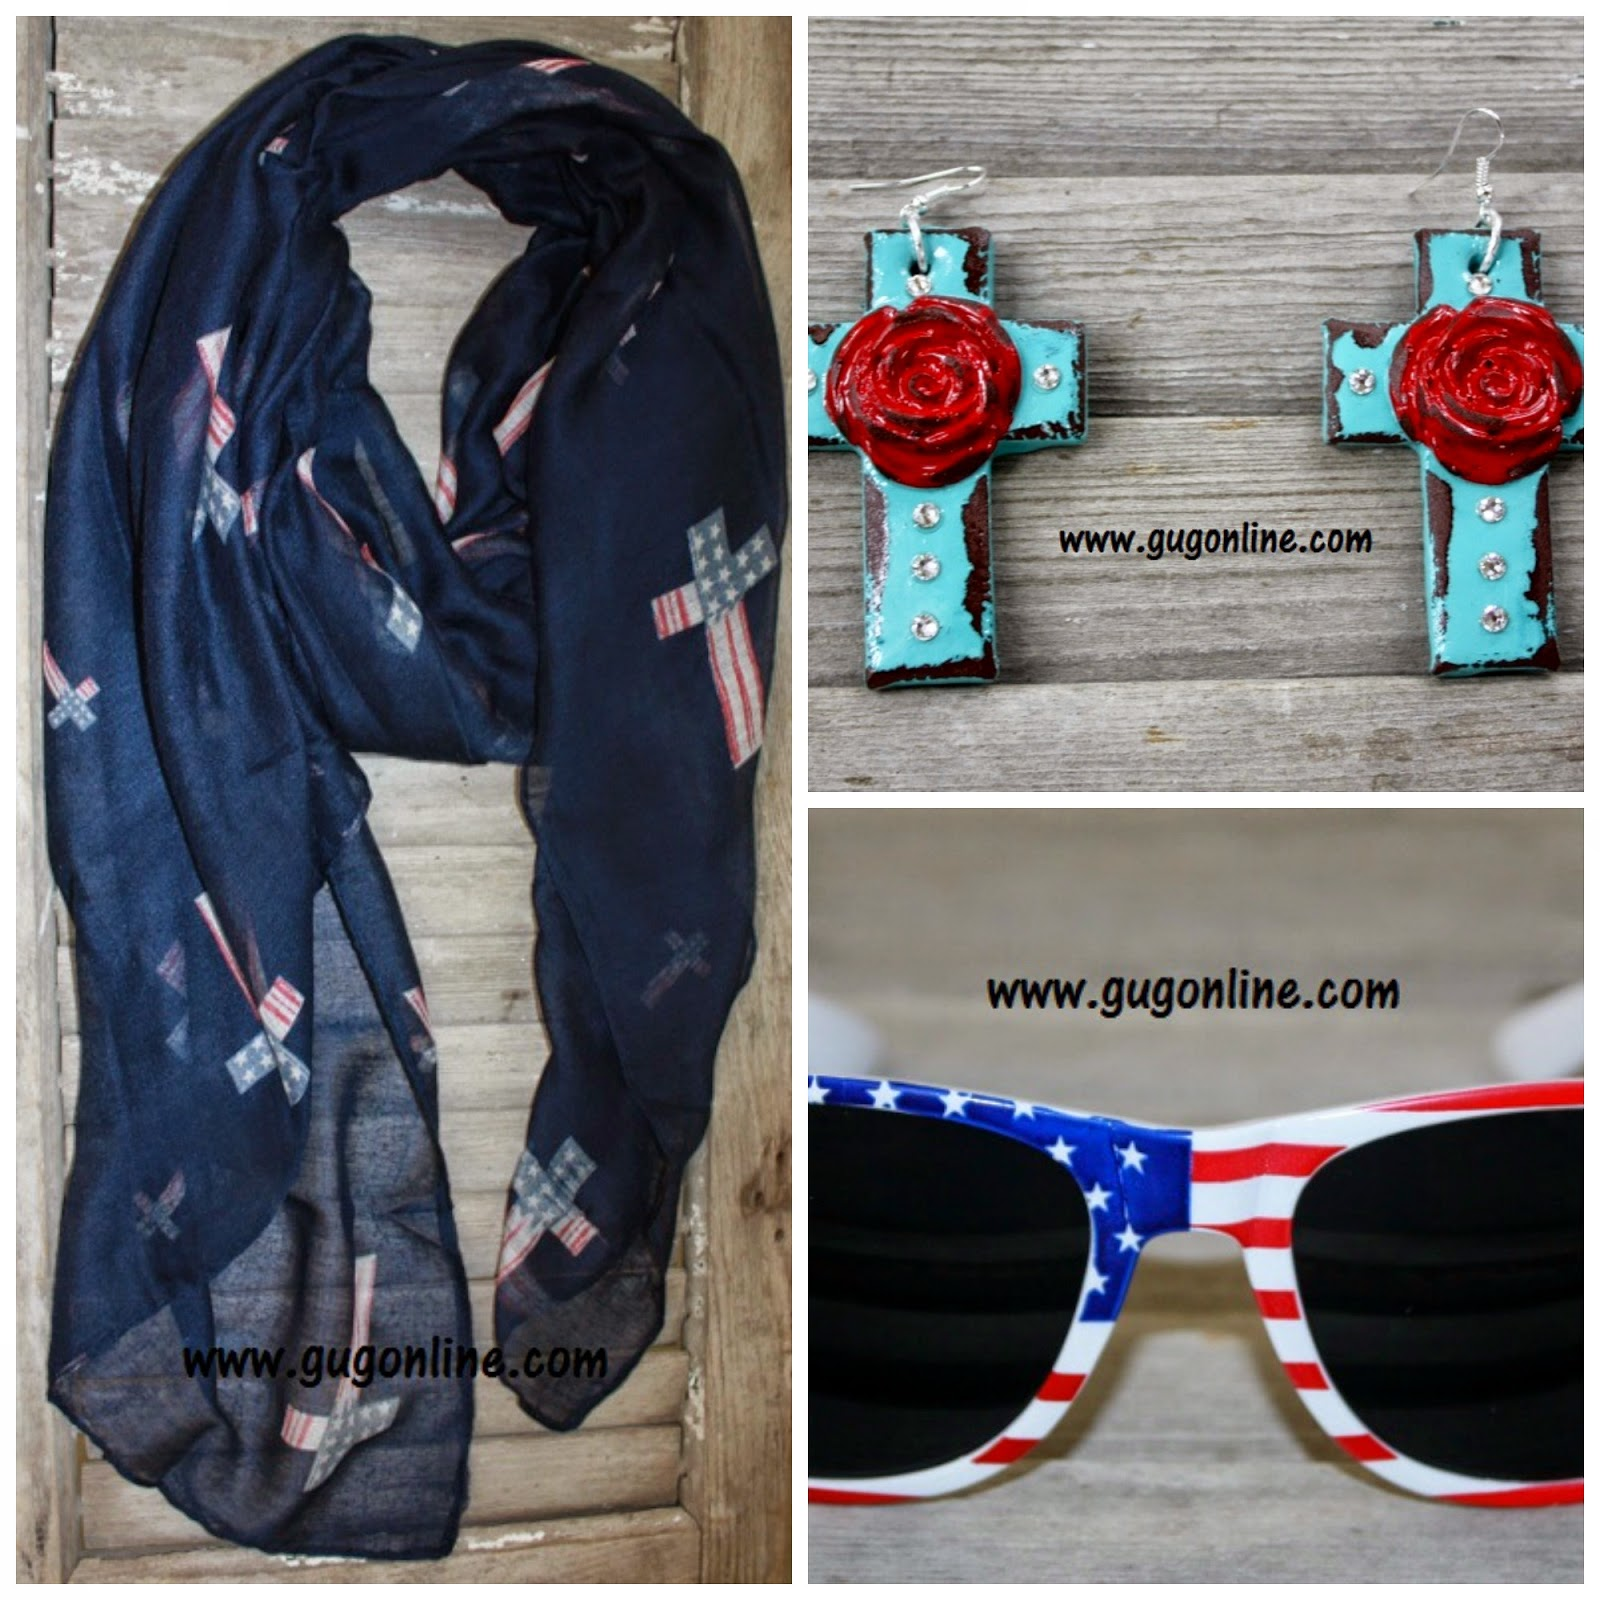 bb5e5957cc128f Left: Navy Scarf with American Flag Crosses